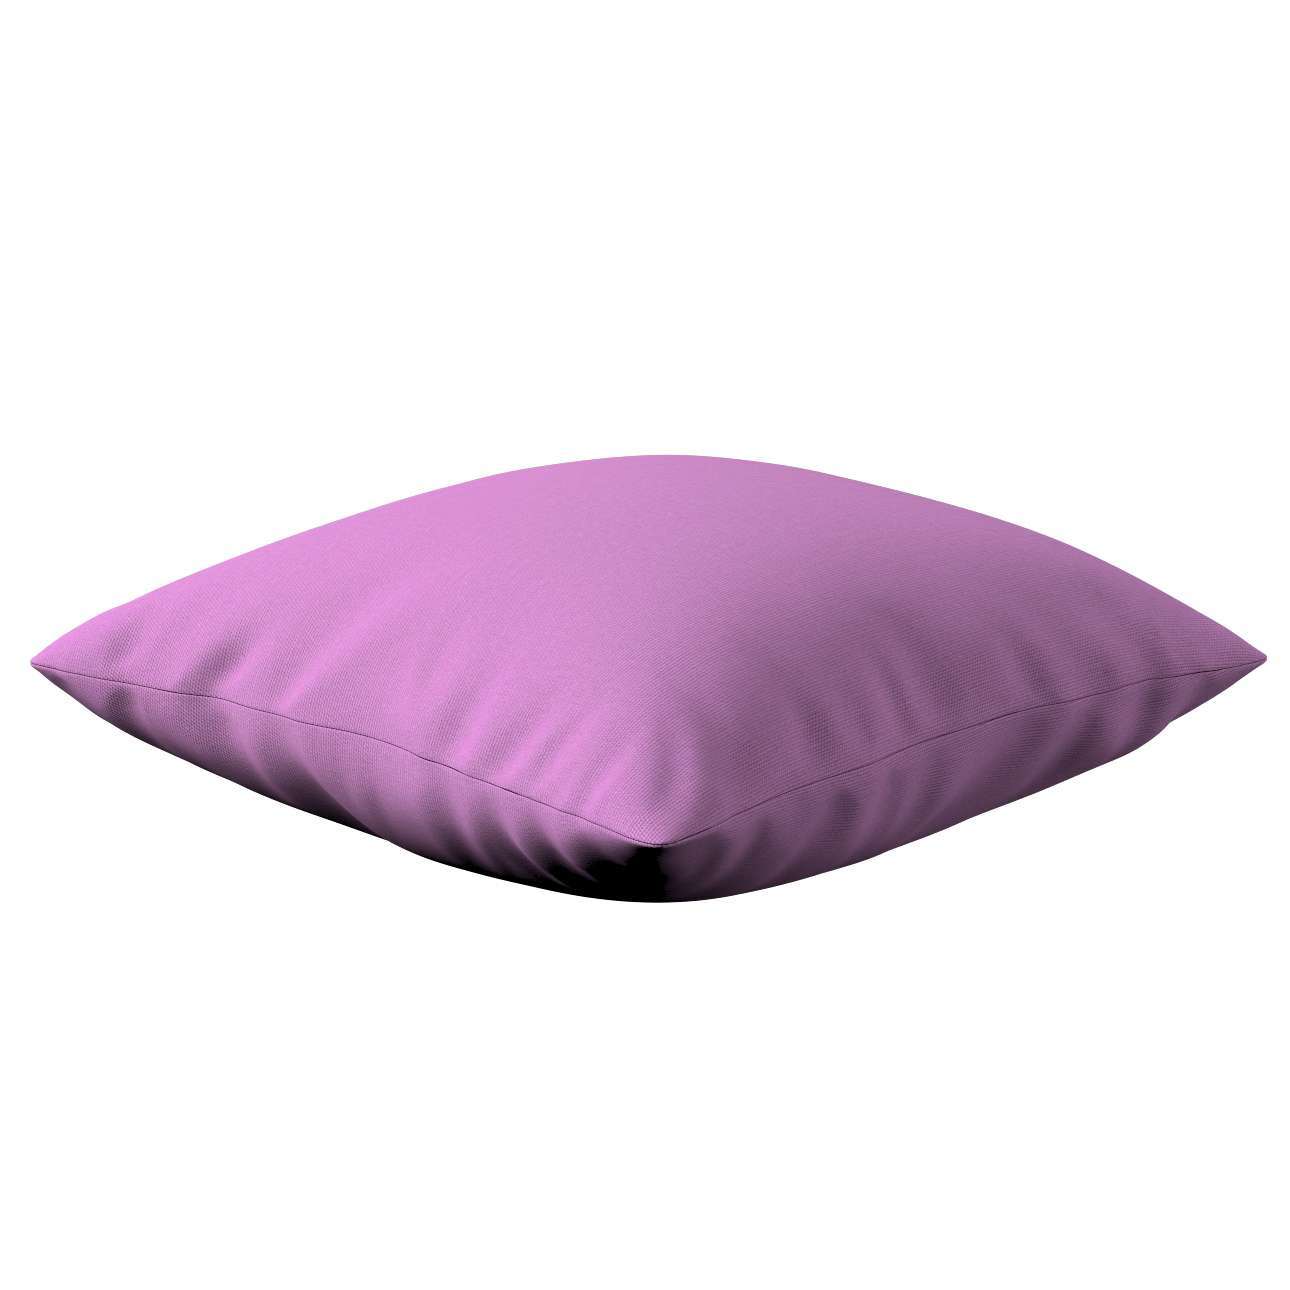 Milly cushion cover in collection Happiness, fabric: 133-38